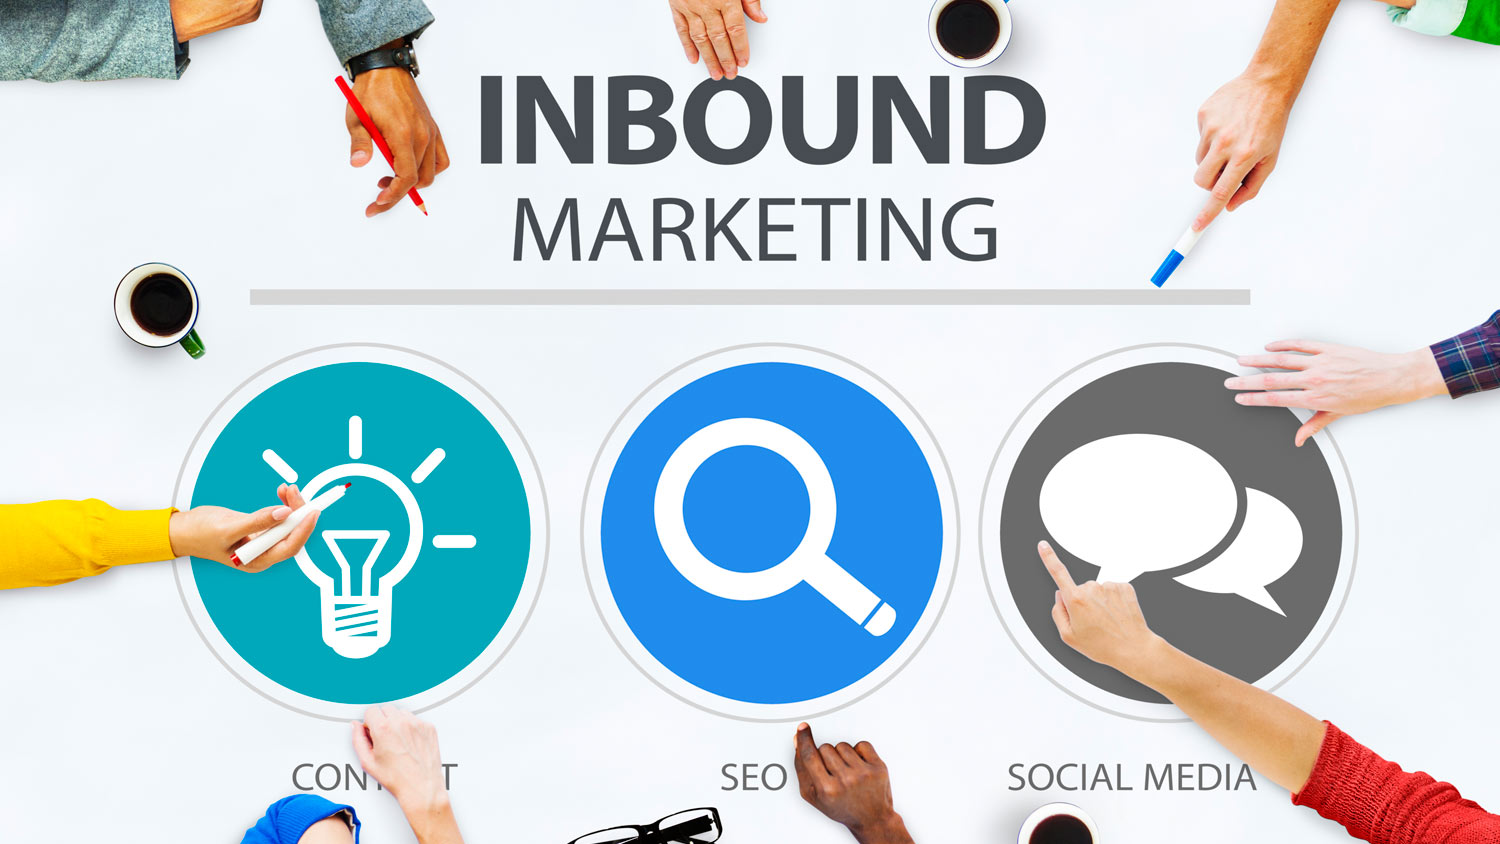 inbound marketing para consultor seo